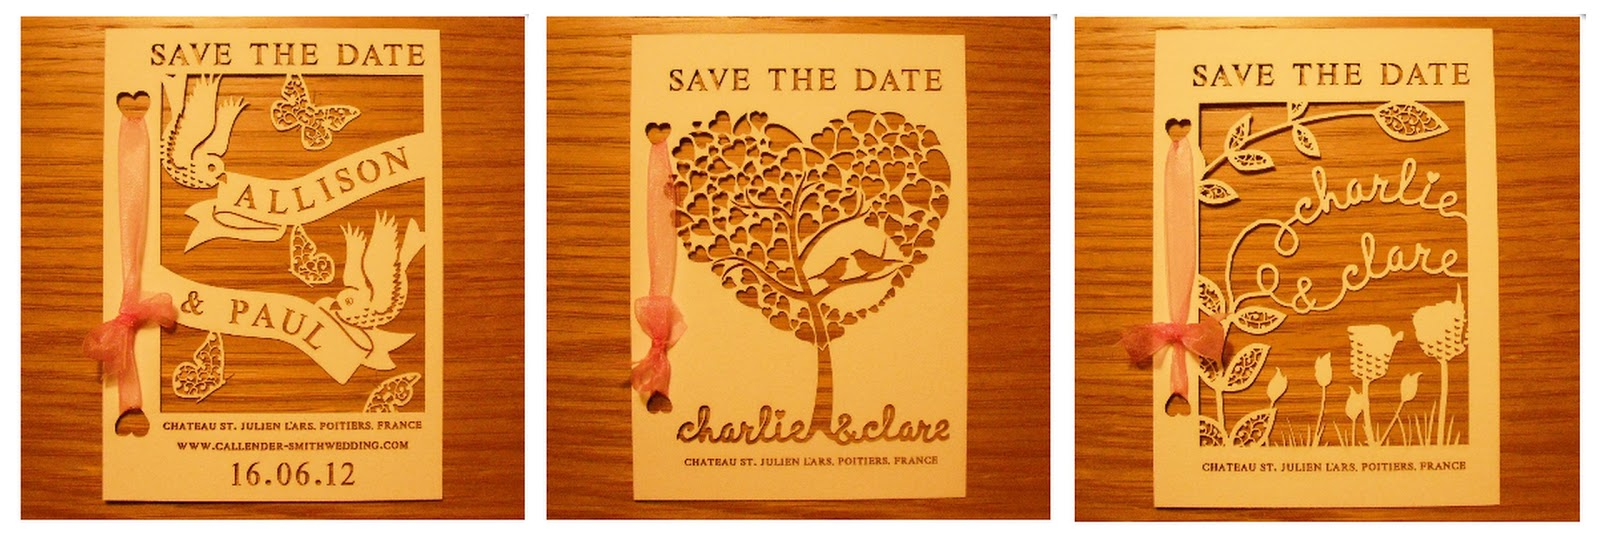 Wedding Invitations Laser Cut Uk : Laser_Cut_Wedding_Invitations_Before_the_Big_Day_Wedding_Blog_UK_2.jpg